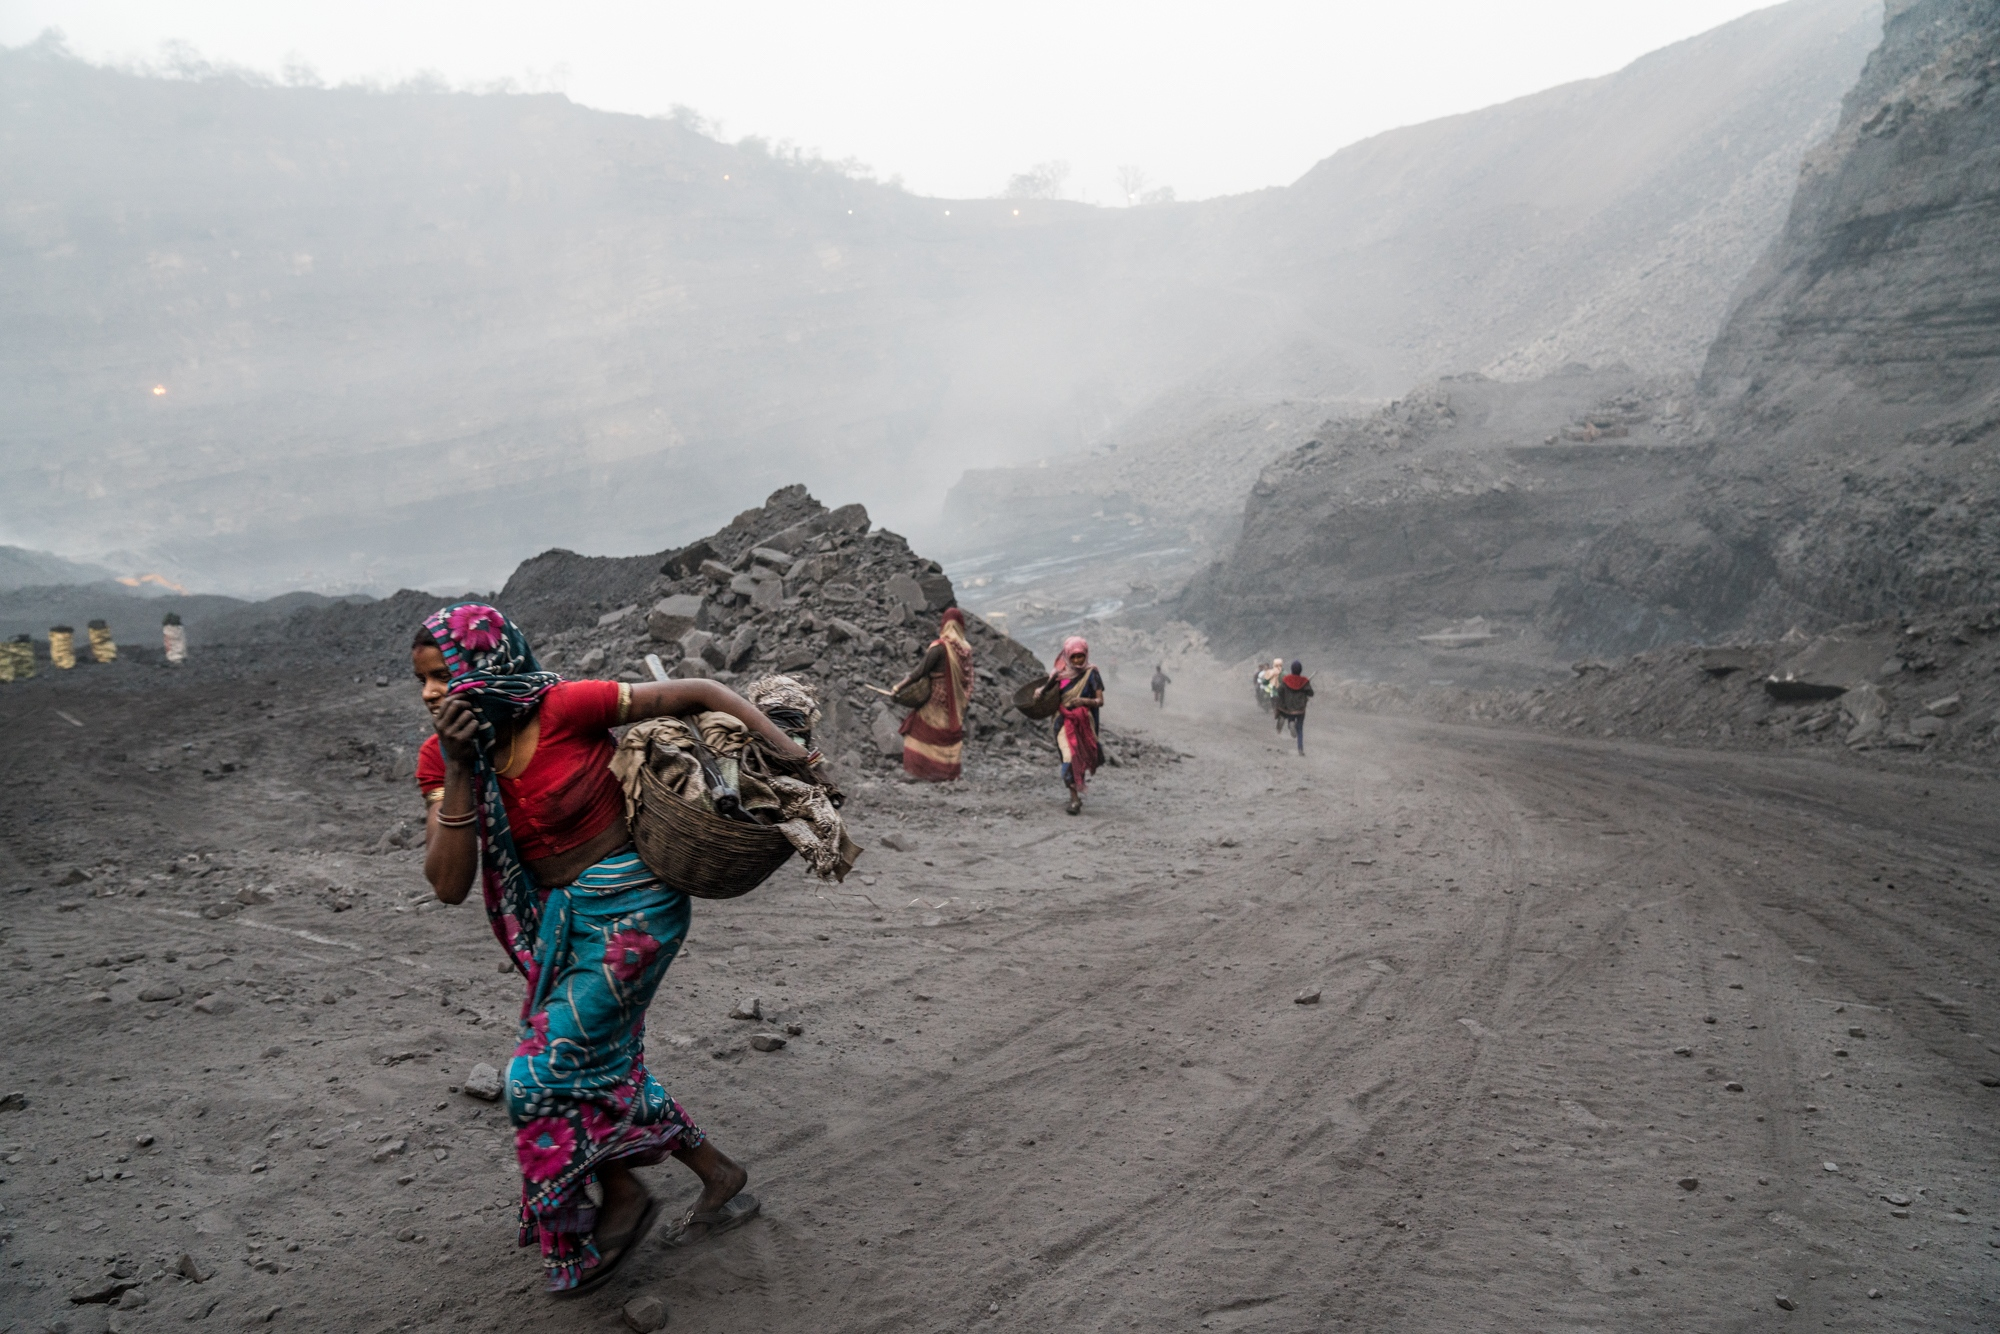 Coal mine scavengers, who are not legally allowed to be inside the mines, run for cover after hearing that police are on the way to check on scavenger activity.